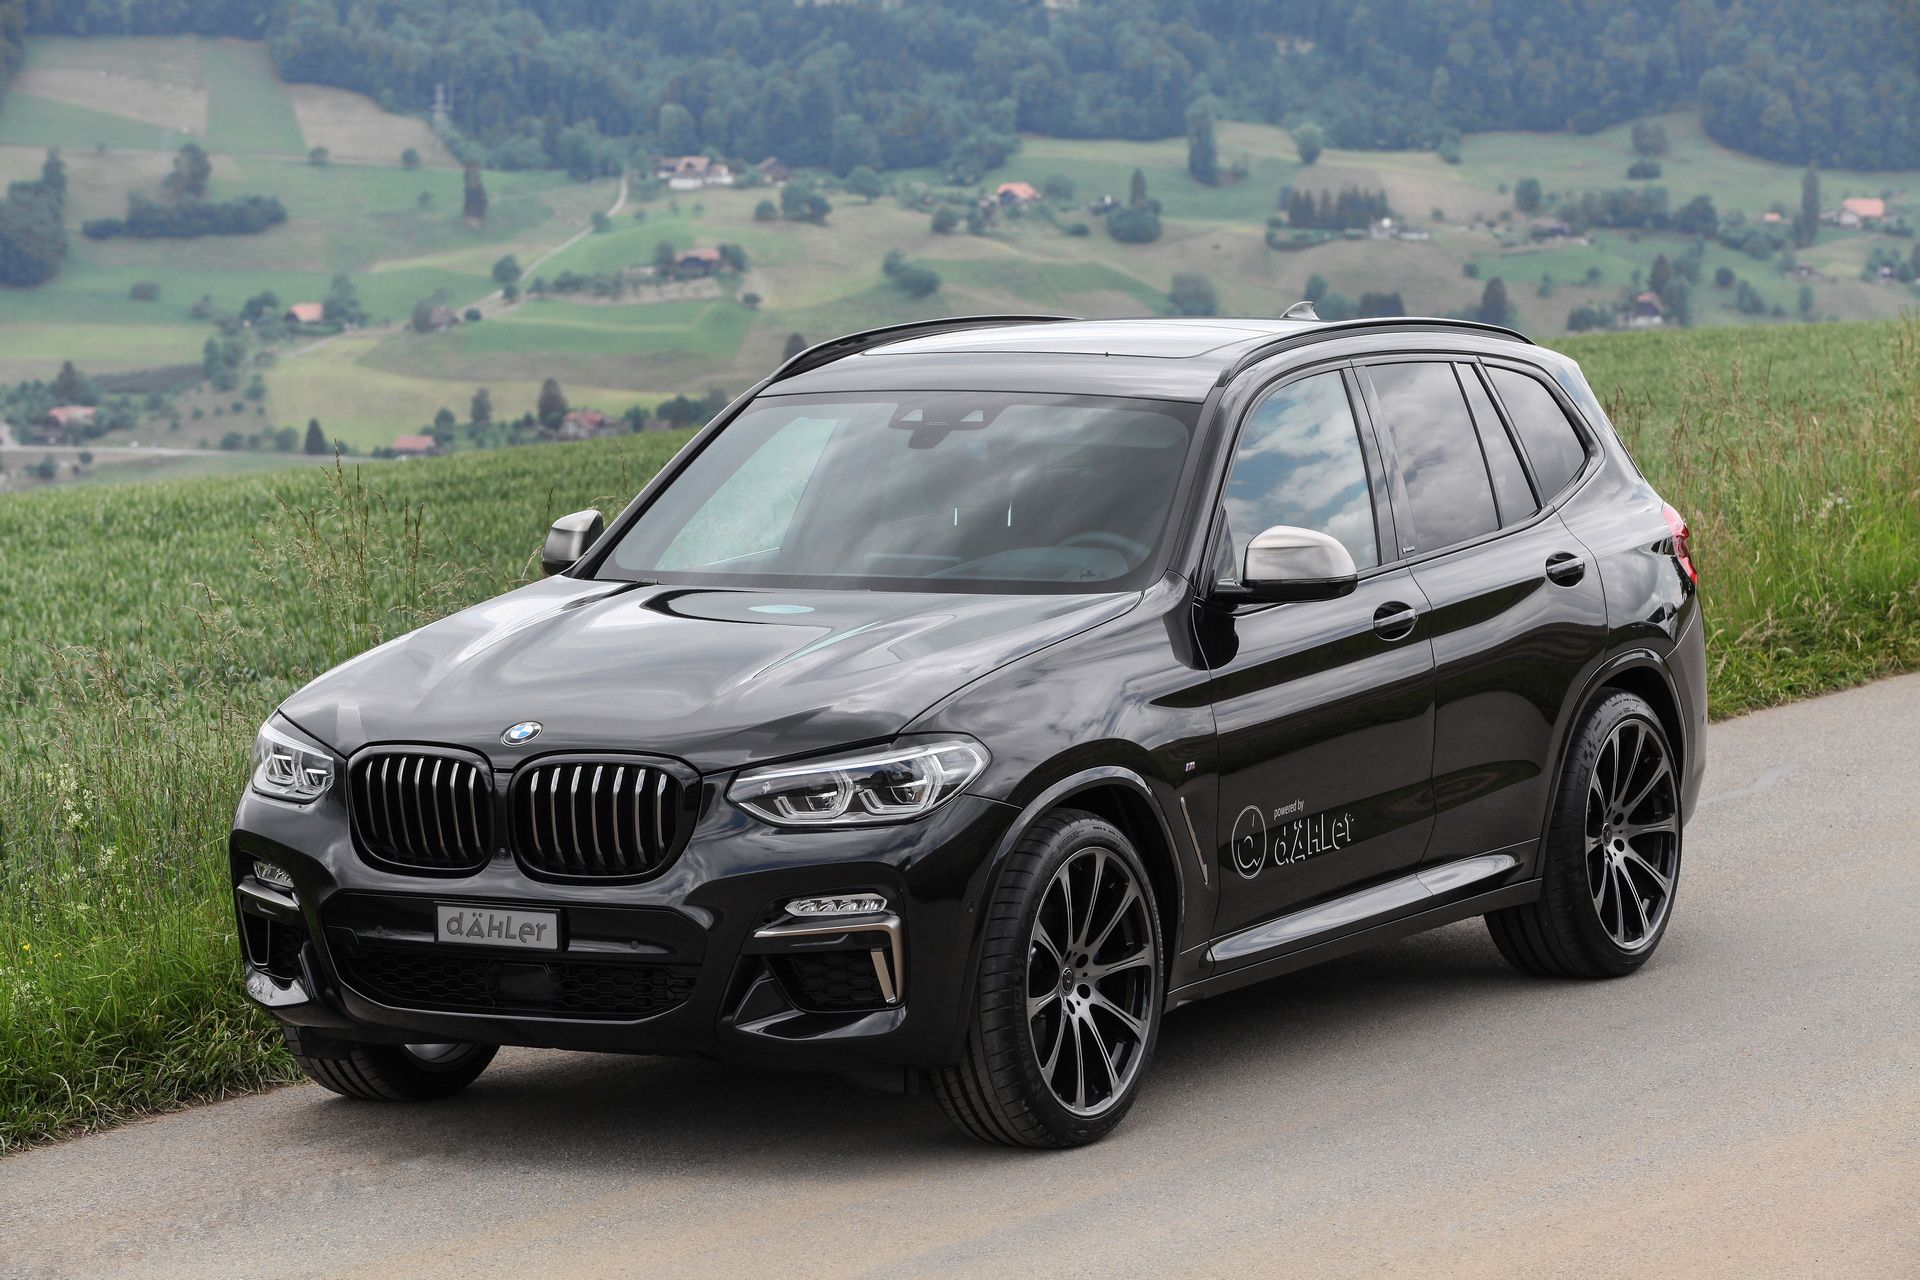 BMW_X3_M40i_by_Dahler_0004